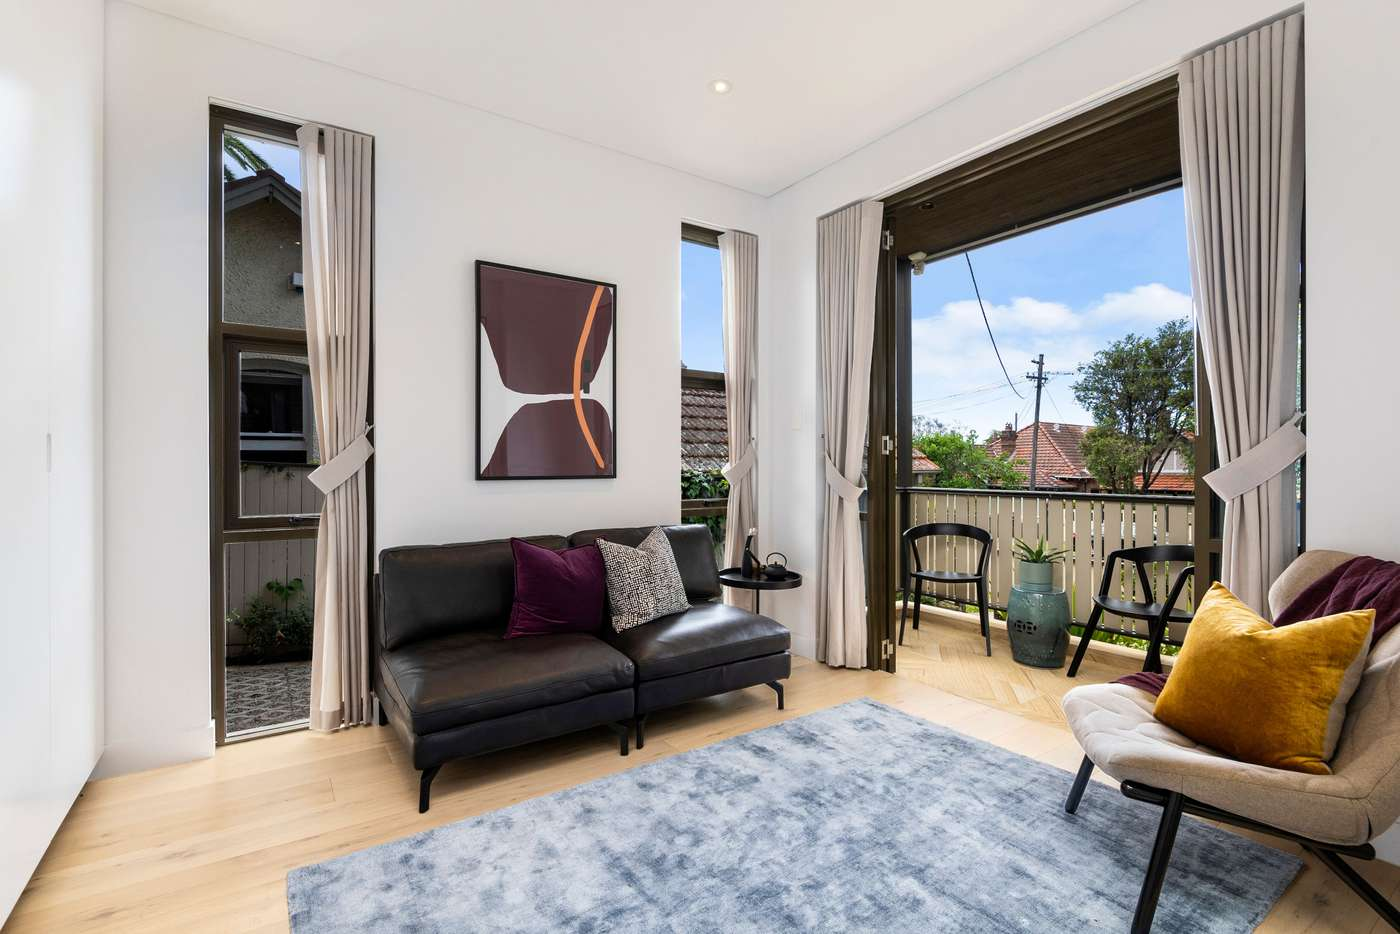 Sixth view of Homely house listing, 32B Orlando Avenue, Mosman NSW 2088